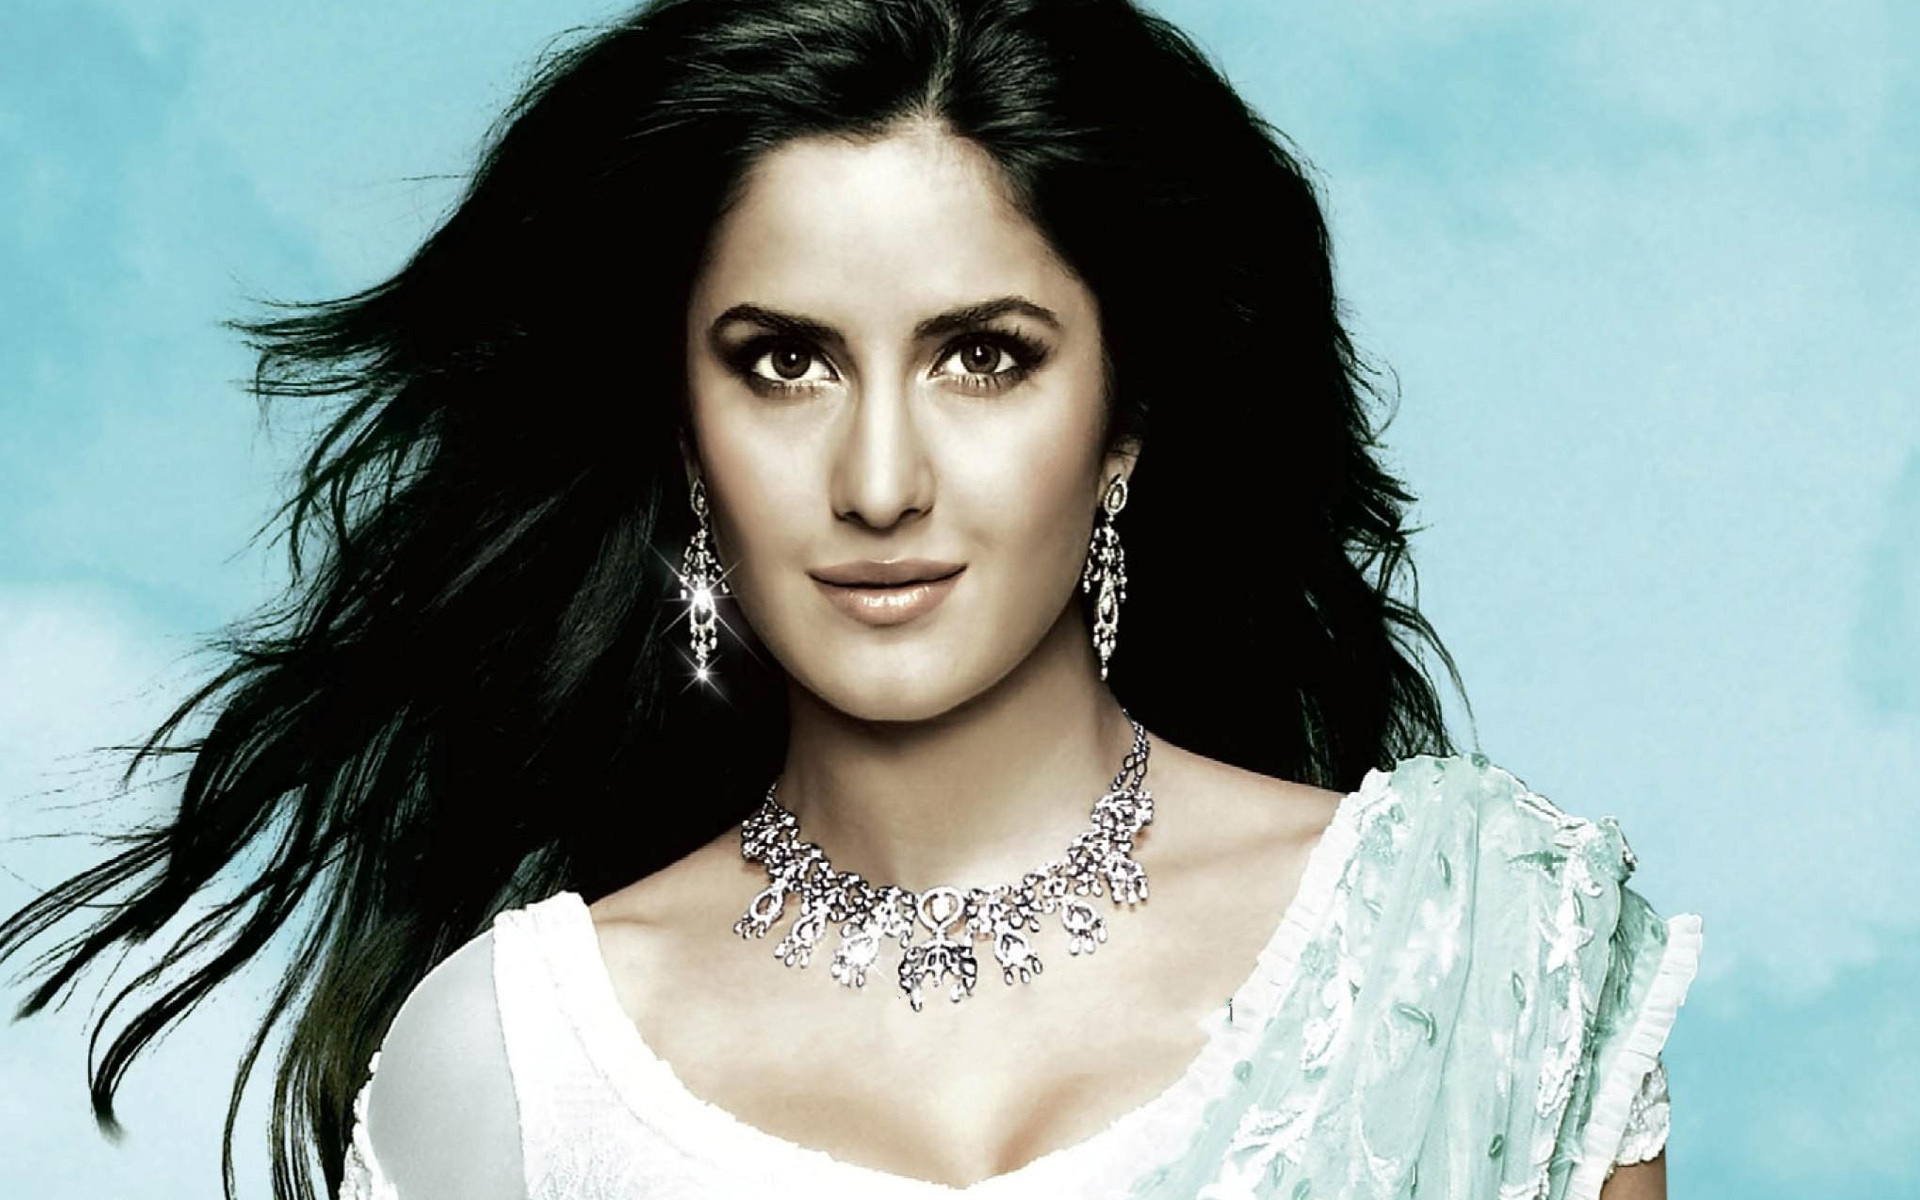 Free Download 25 Beautiful Katrina Kaif Wallpapers - Katrina Kaif Hd 1080p , HD Wallpaper & Backgrounds